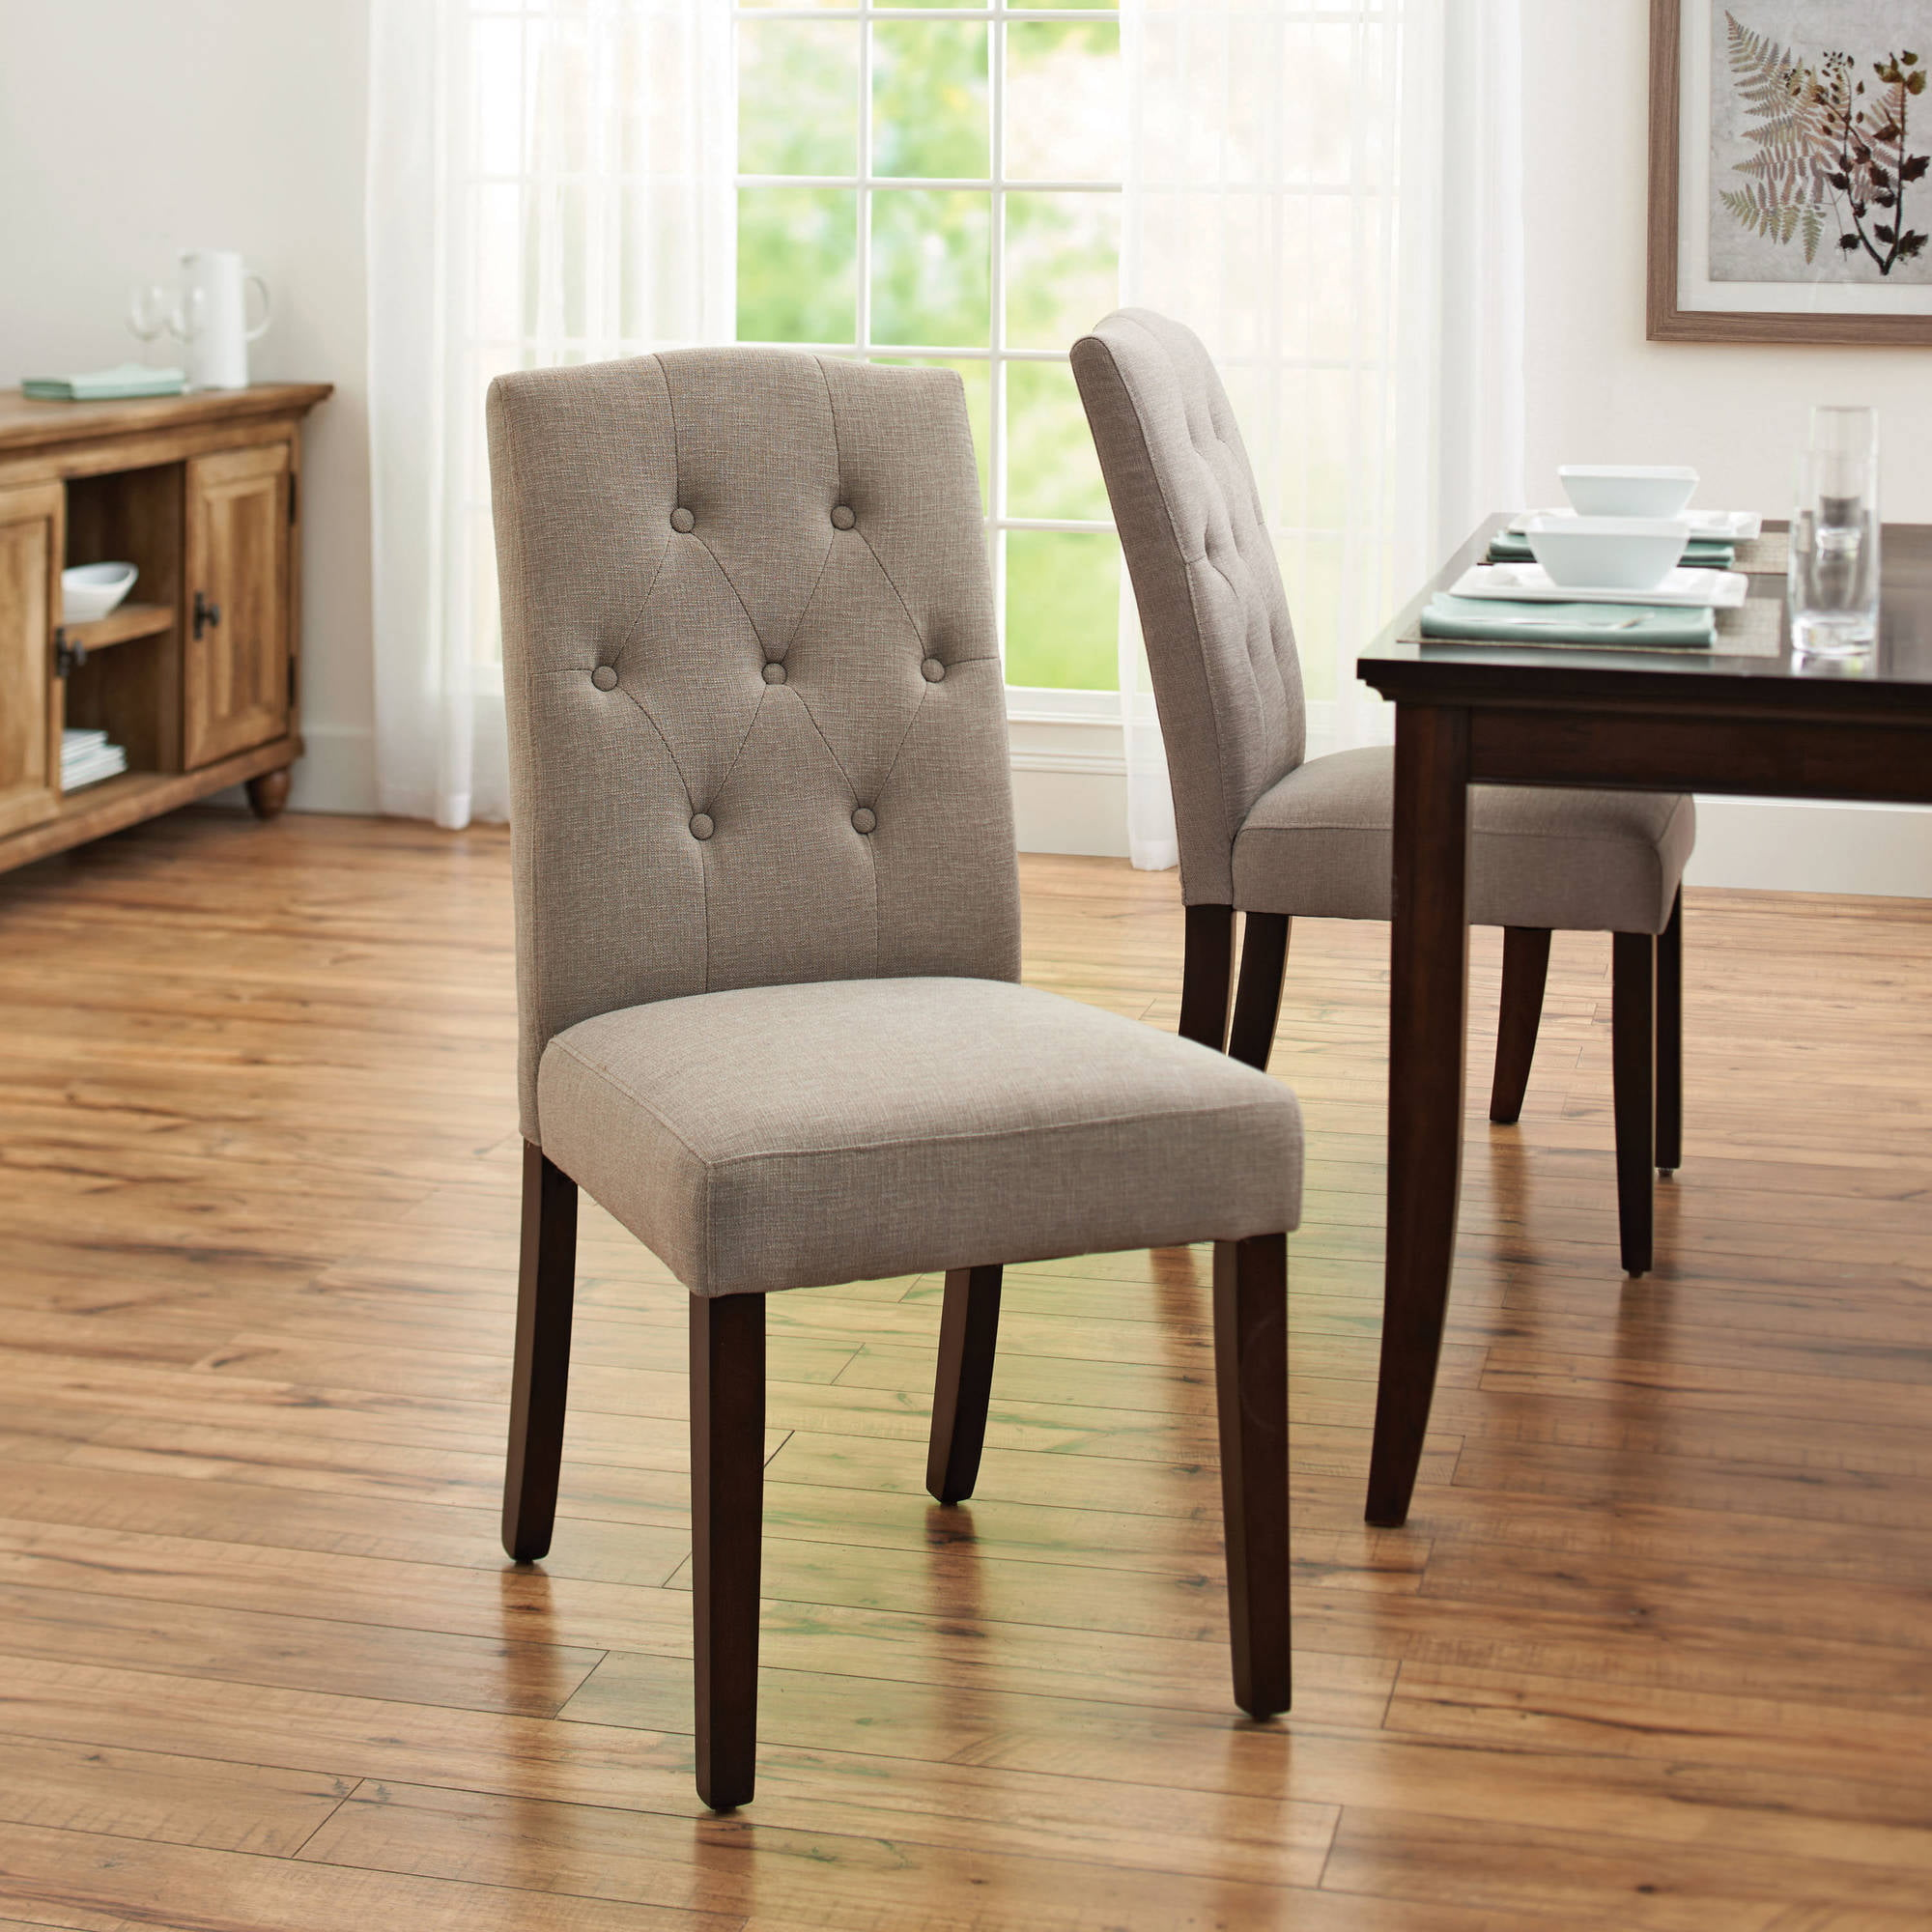 Furniture Dining Room Chairs set of dining room chairs Home Decorating Ideas